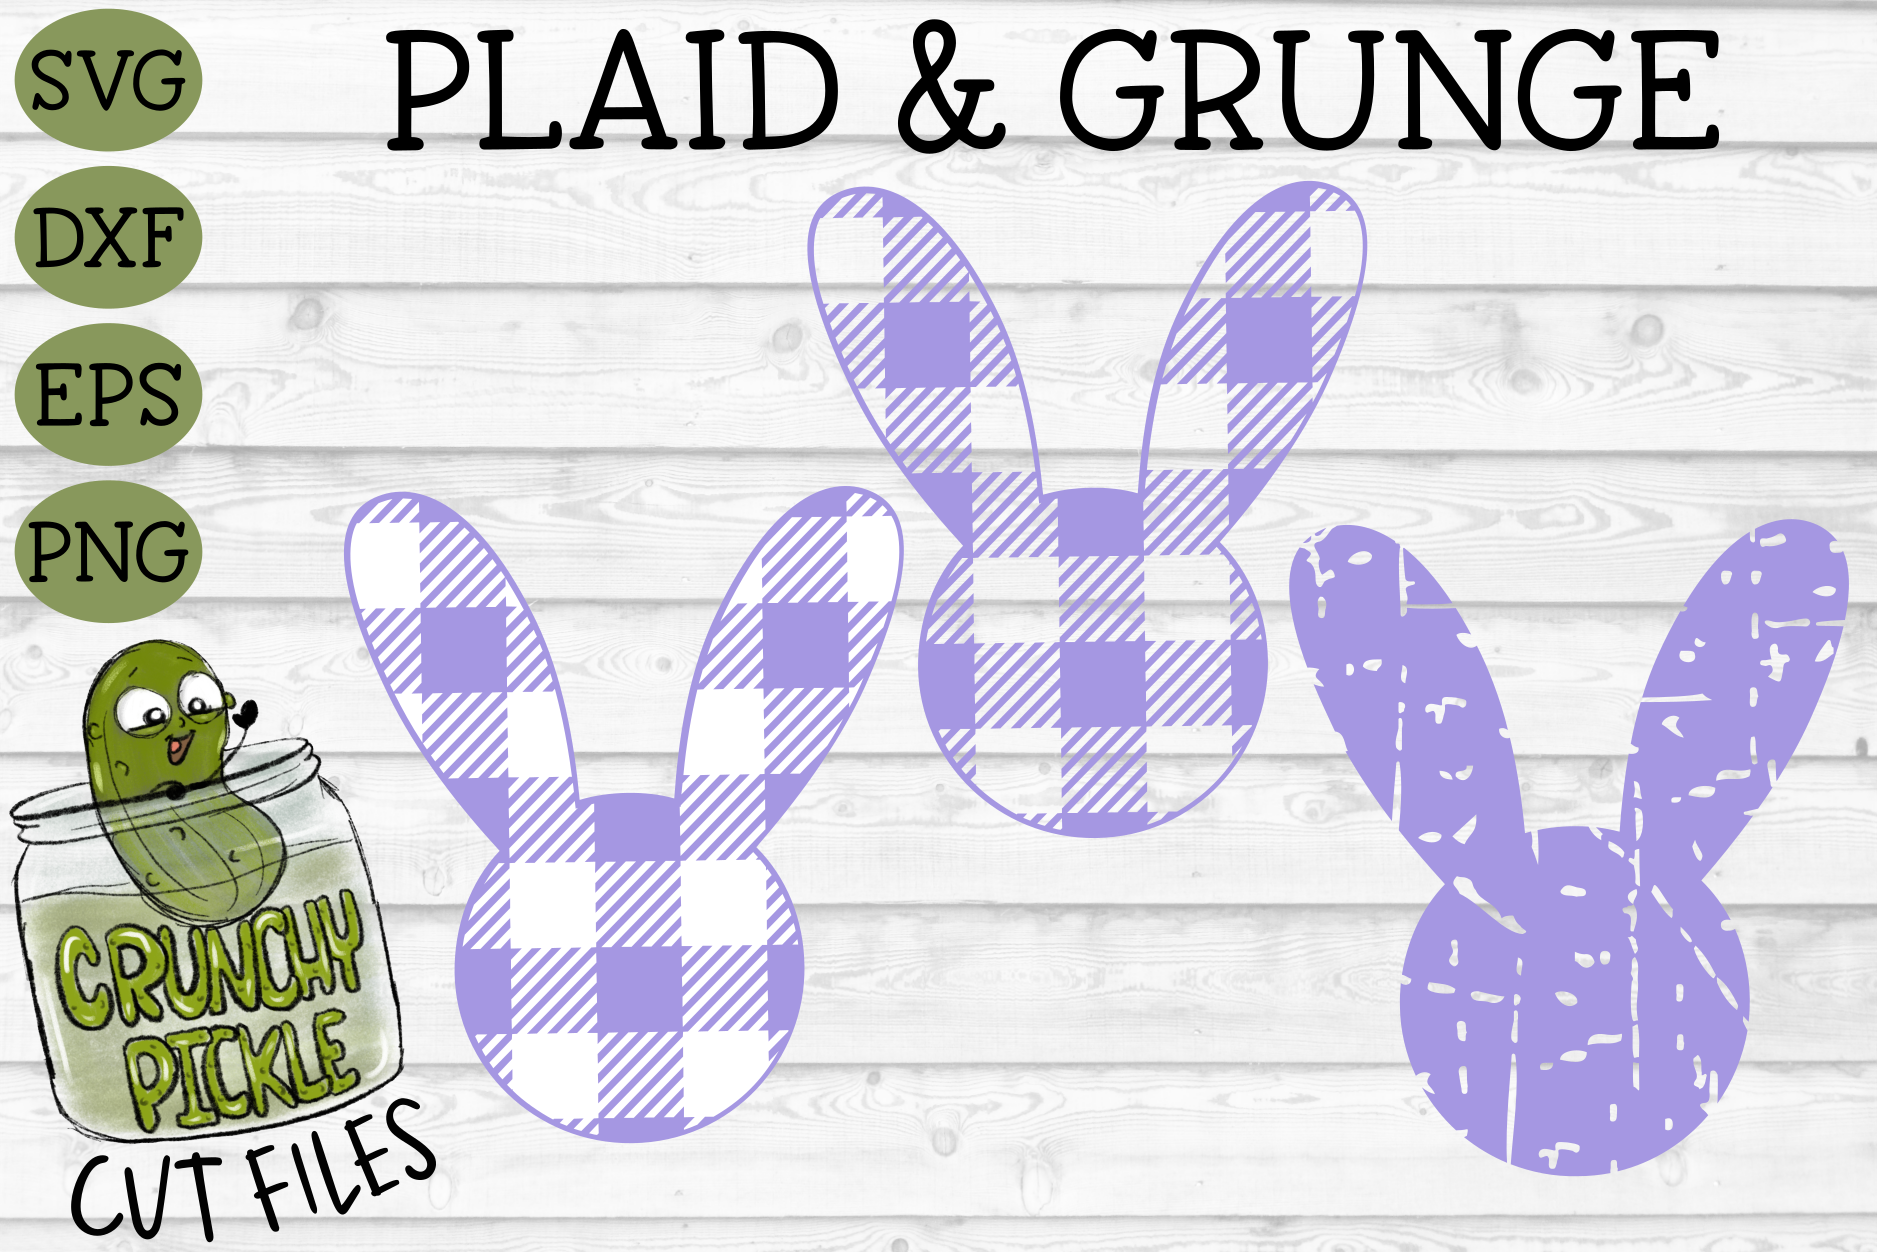 Download Free Plaid Grunge Spring Easter Bunny 2 Graphic By Crunchy Pickle for Cricut Explore, Silhouette and other cutting machines.